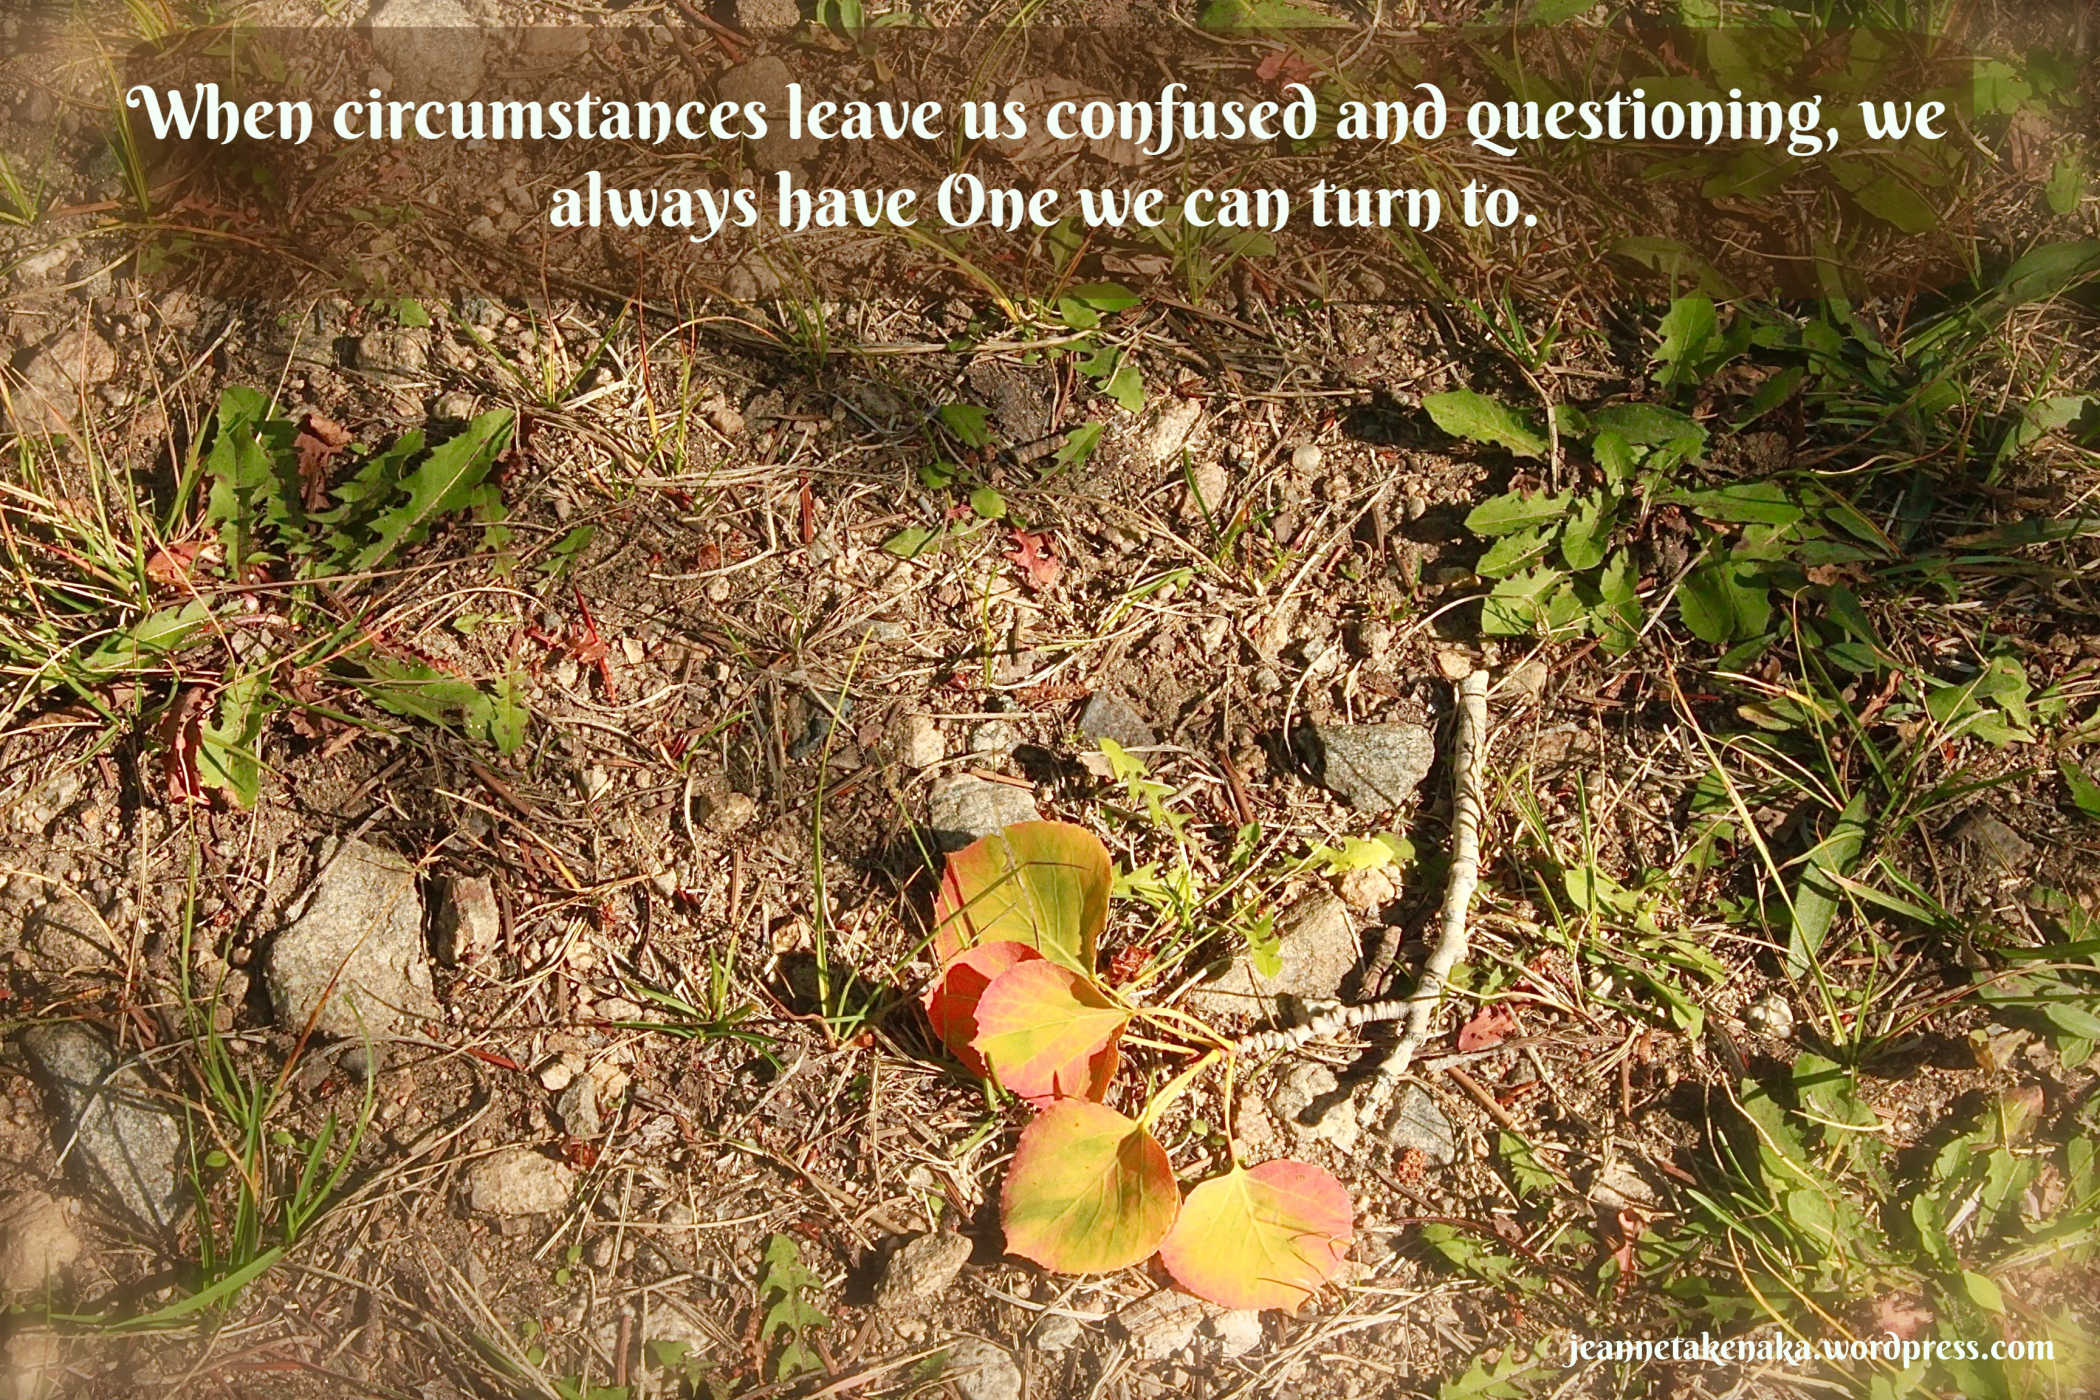 """Meme that says, """"When circumstances leave us confused and questioning, we always have One we can turn to."""" on a backdrop of leaves on a broken twig"""